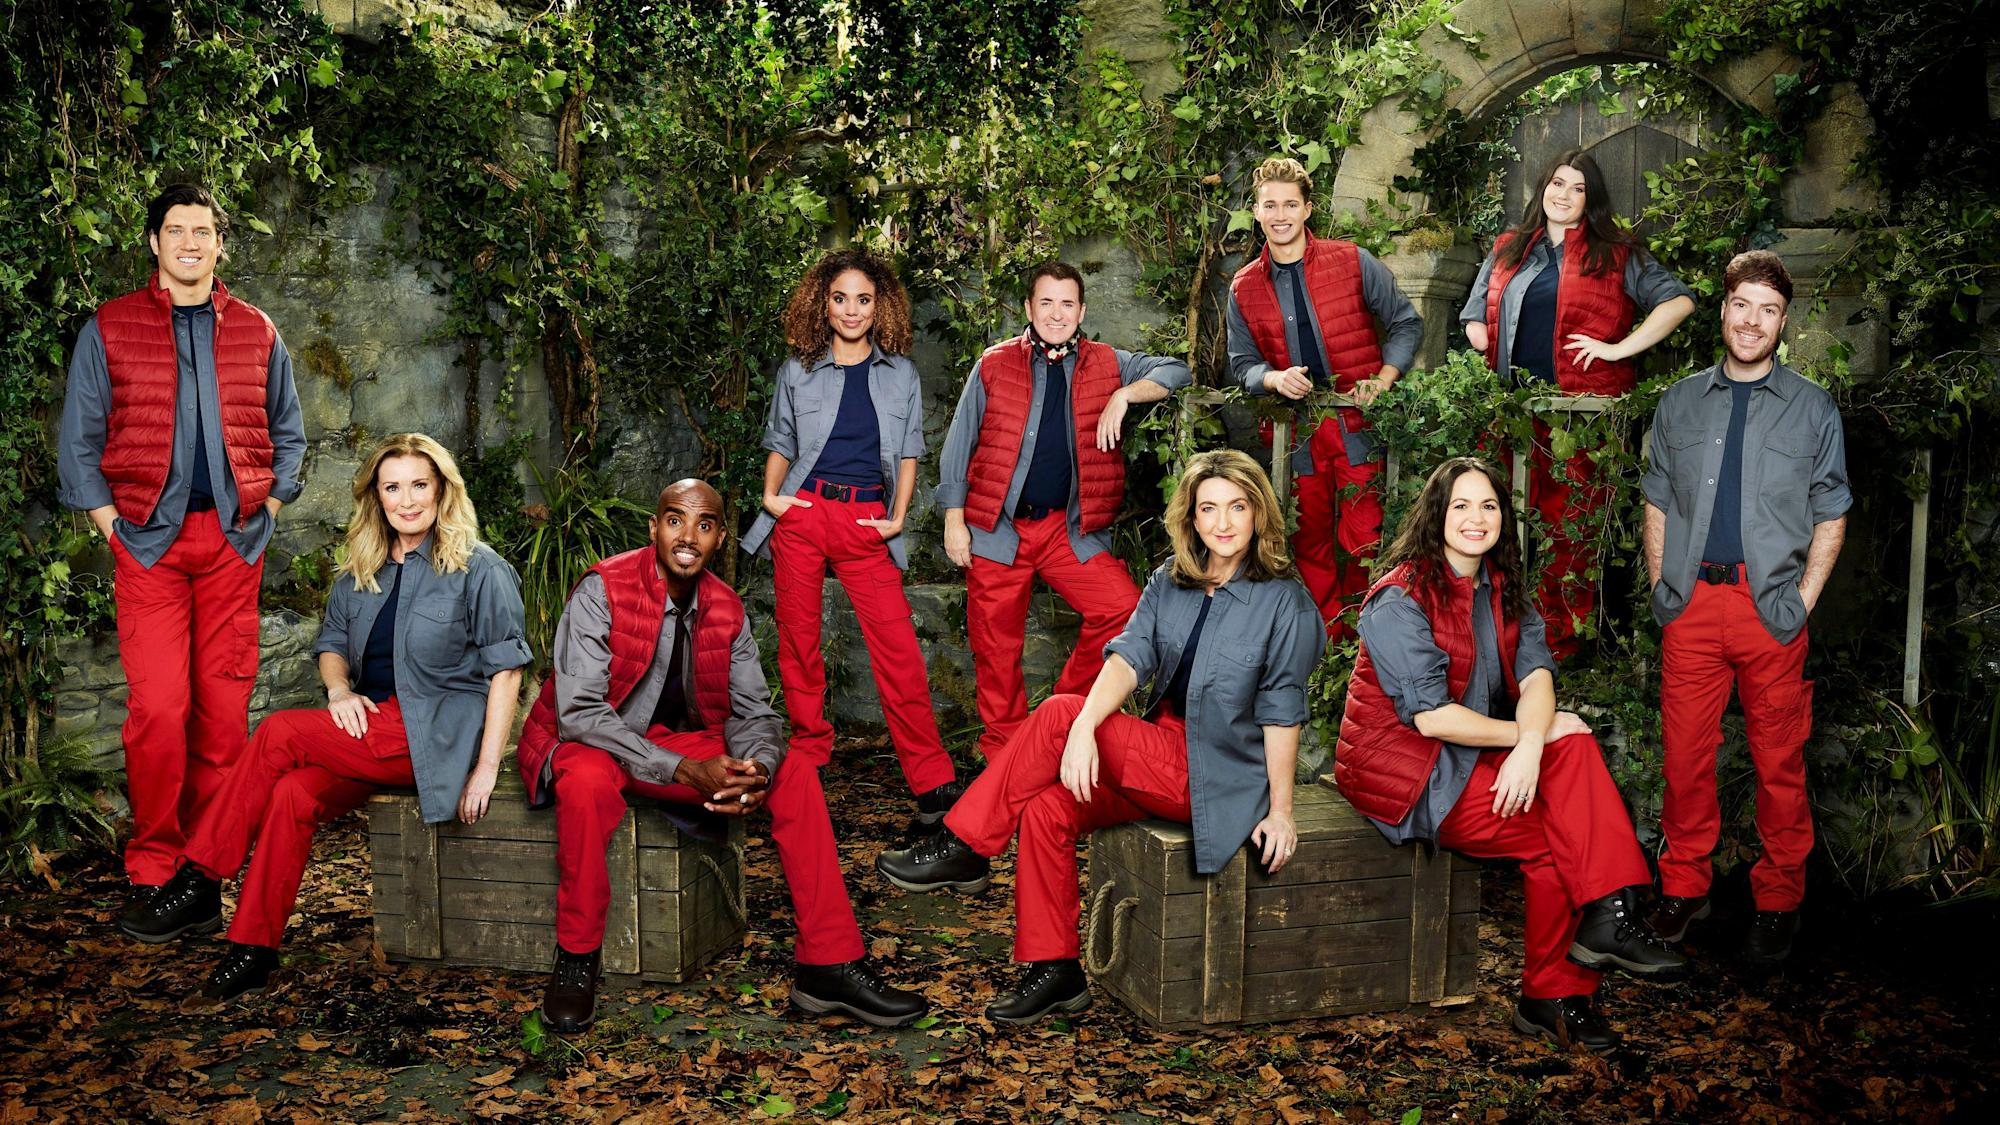 I'm A Celebrity… Get Me Out Of Here! First UK-based series launch draws 10.9 million viewers